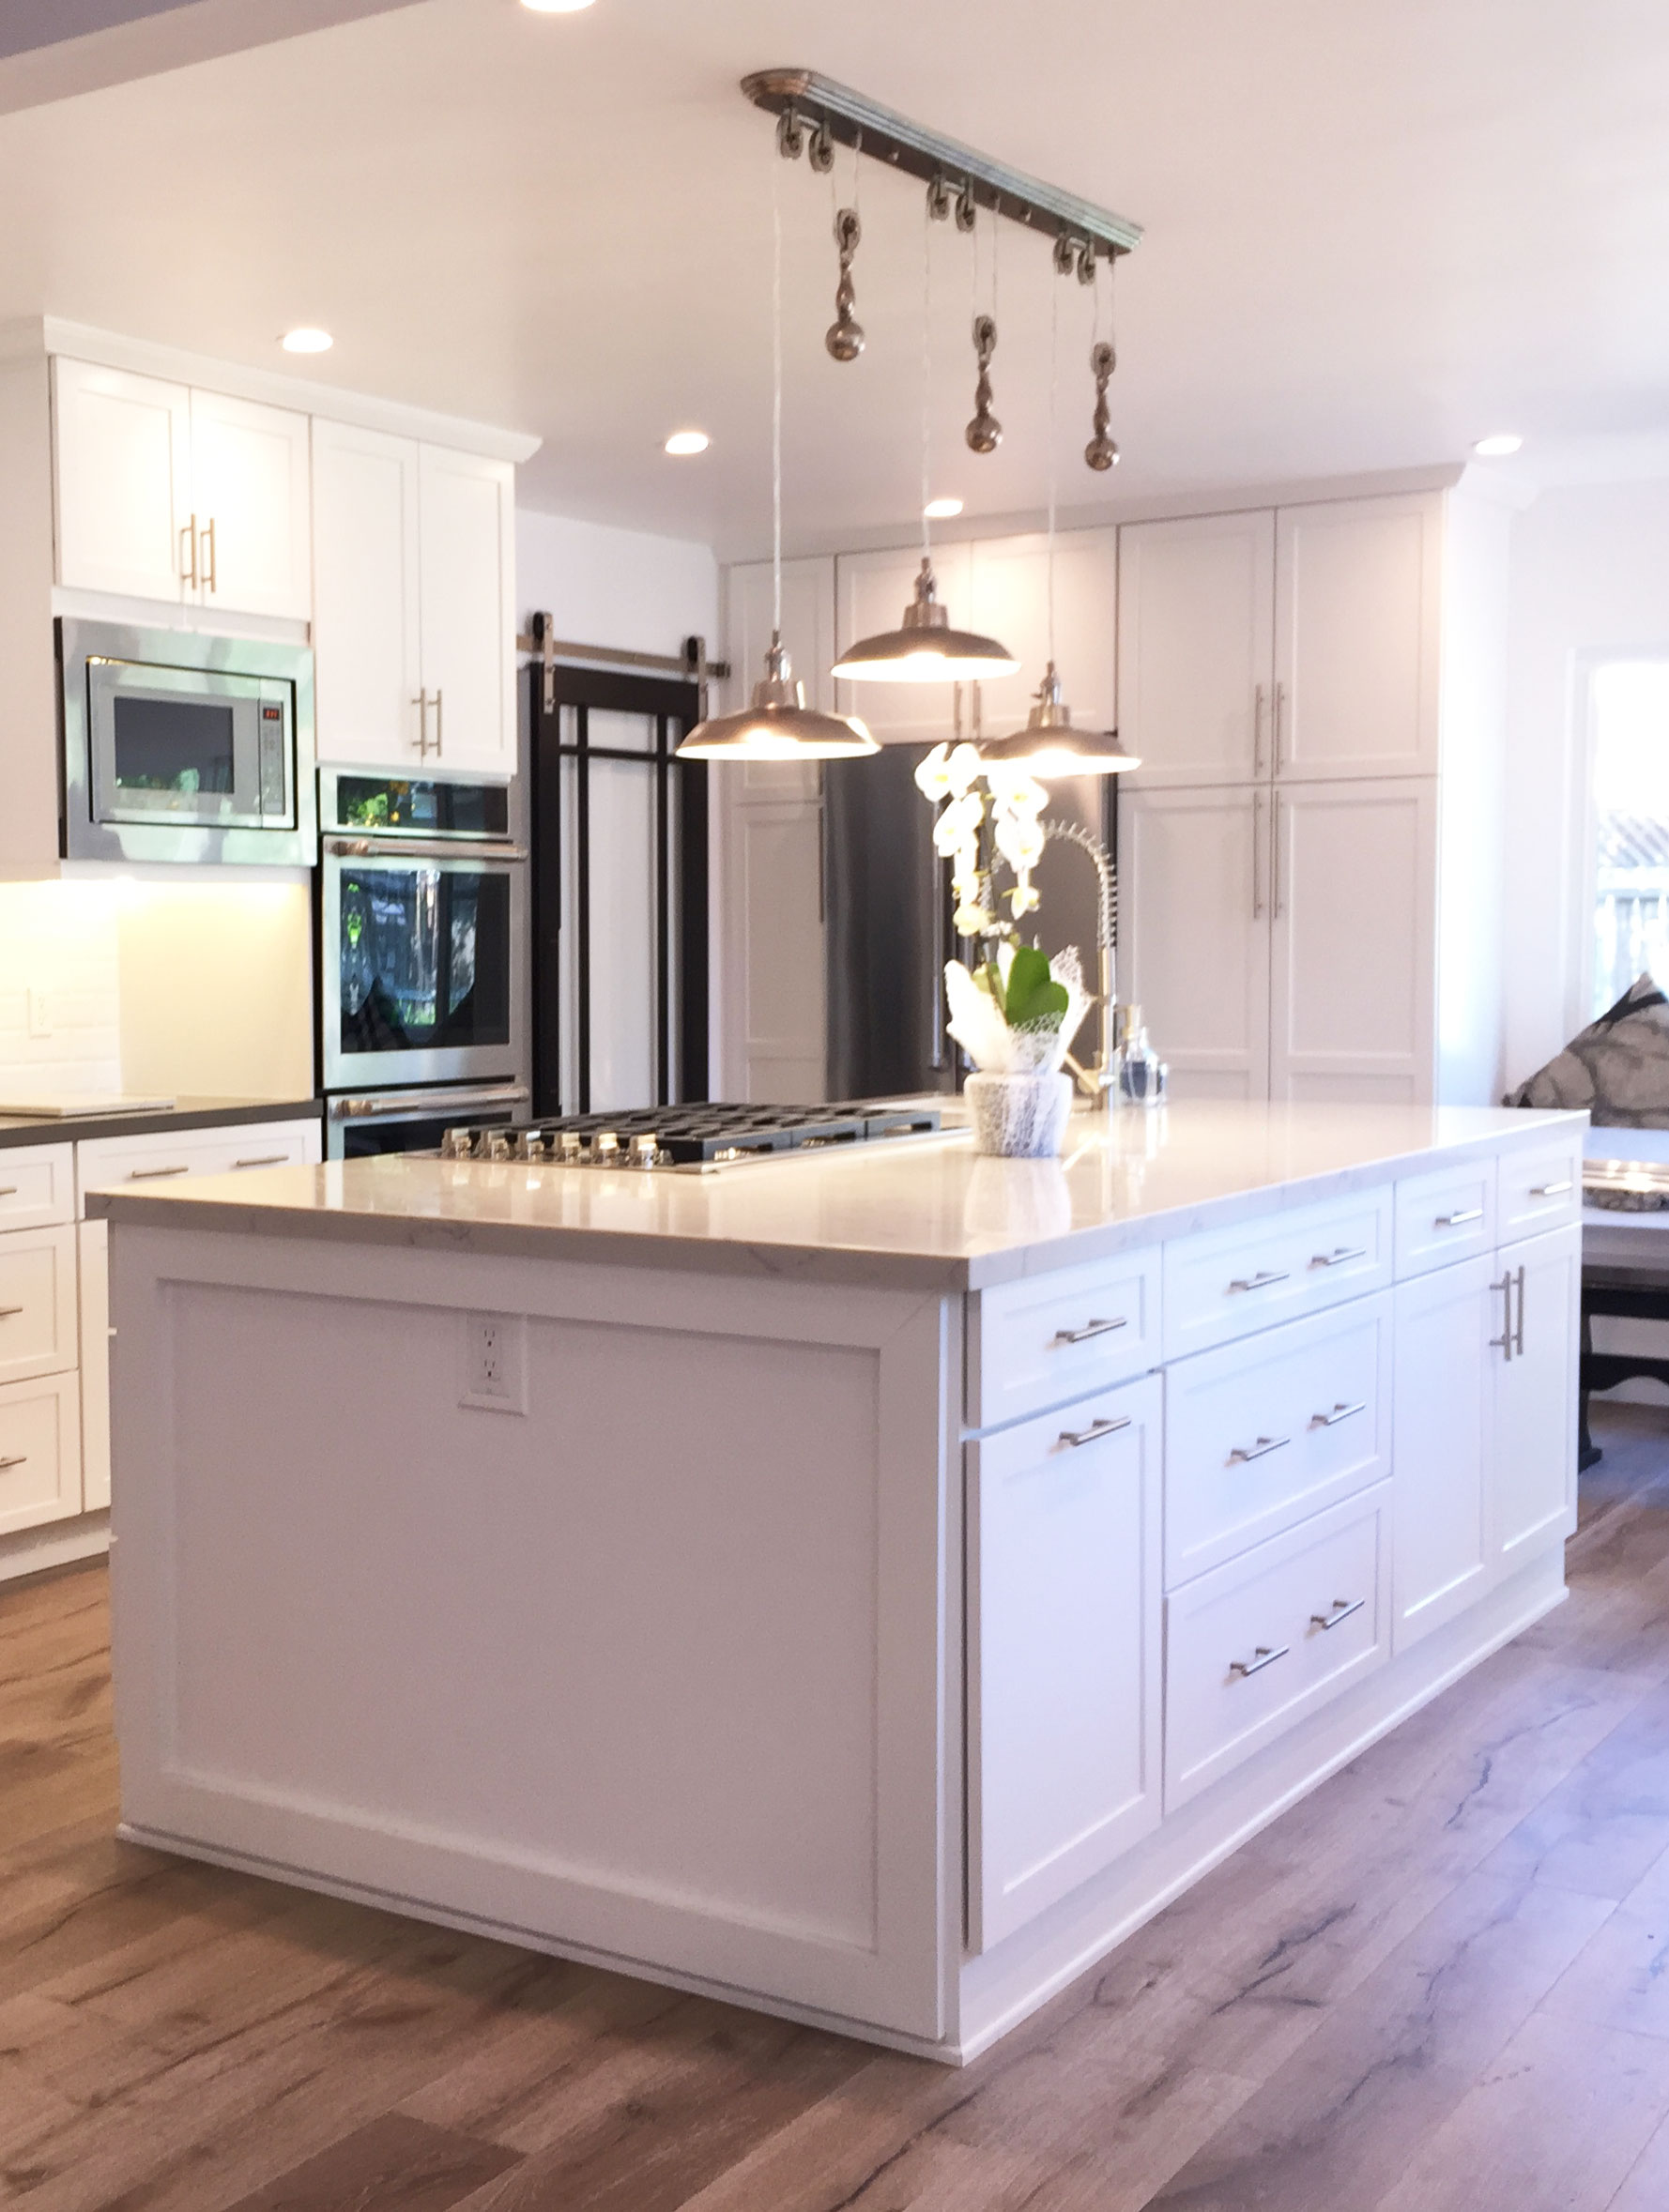 Beautiful White Cabinets Featuring Brushed Nickel Finishes Brings Out The  Simplicity And Elegance In This Gorgeous Remodel. The Stainless Steel  Appliances ...